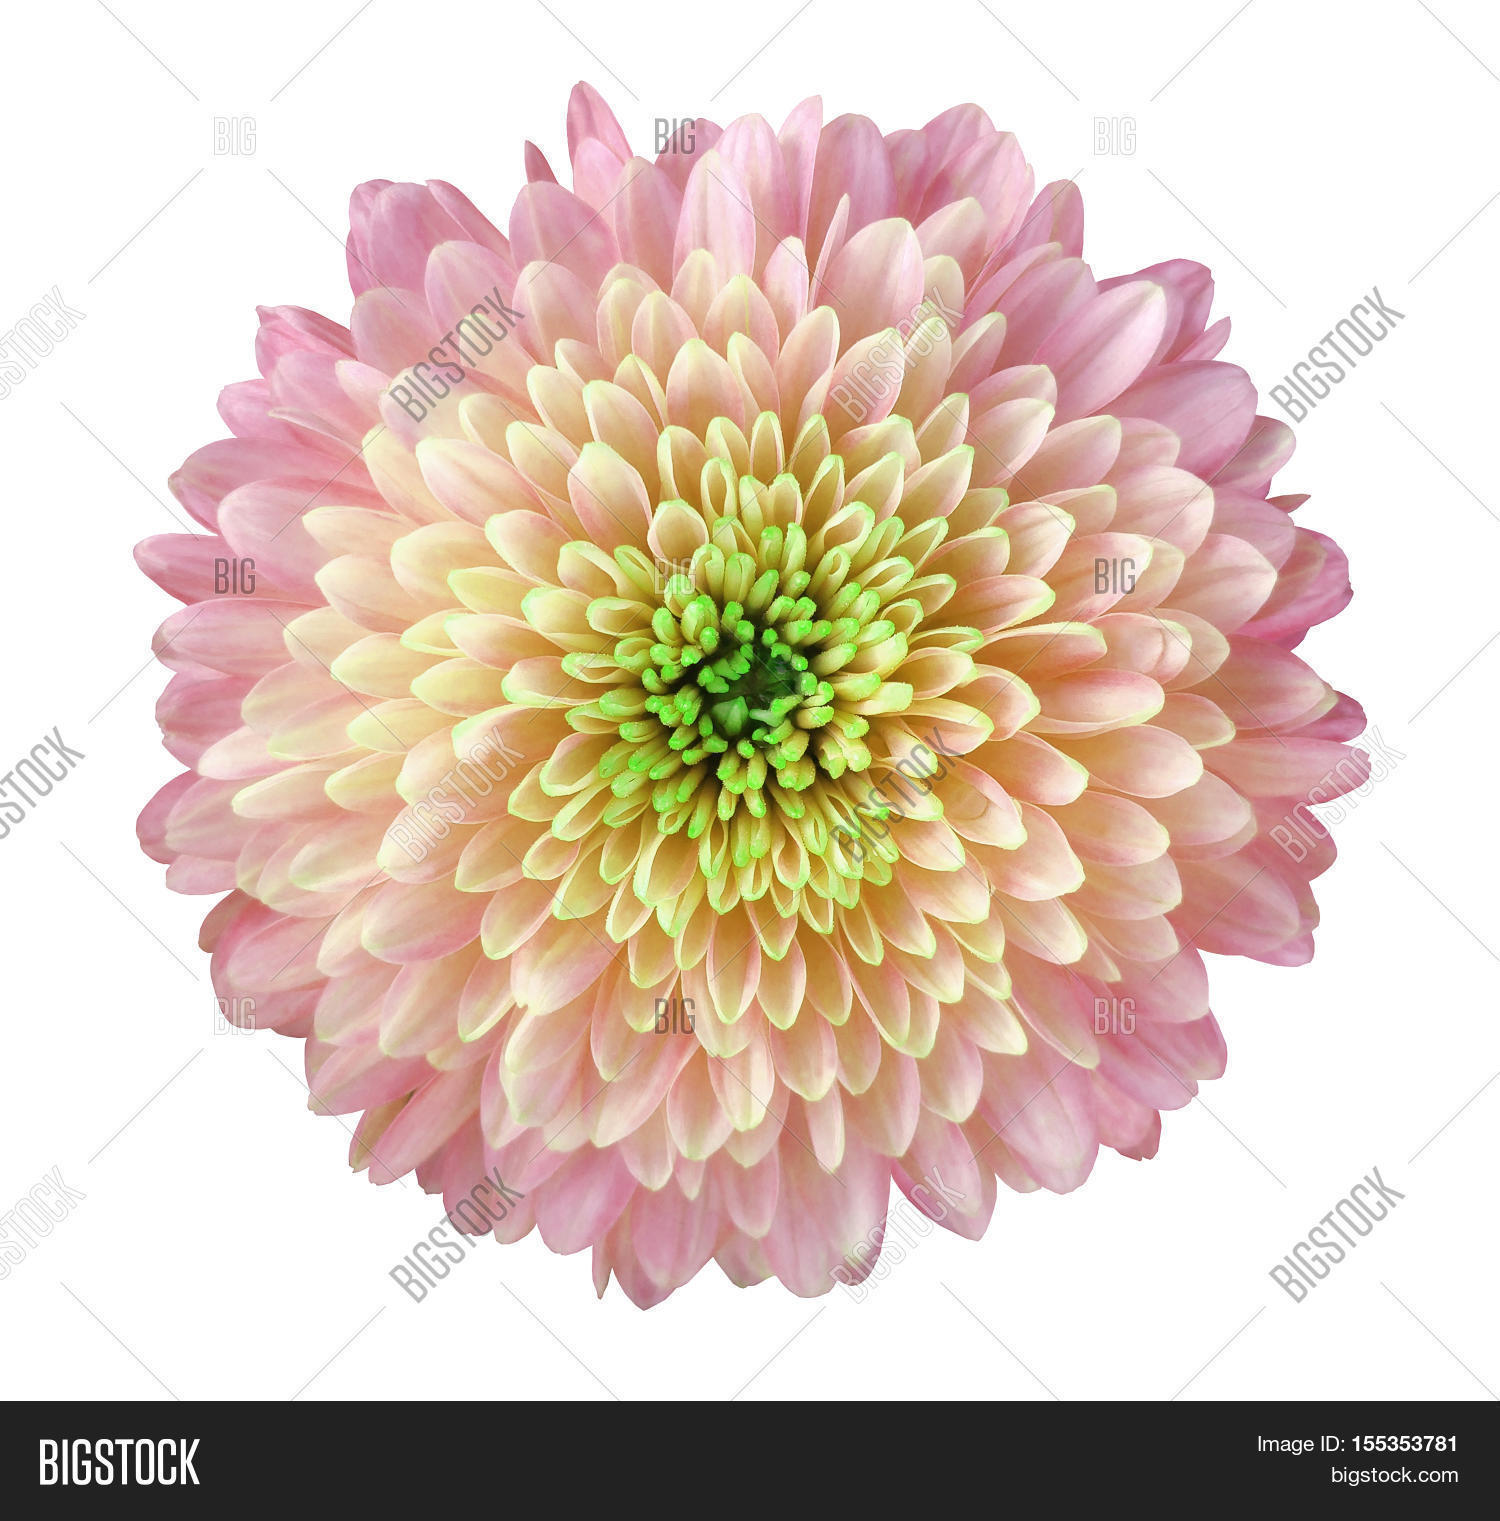 Light Pink Yellow Image Photo Free Trial Bigstock